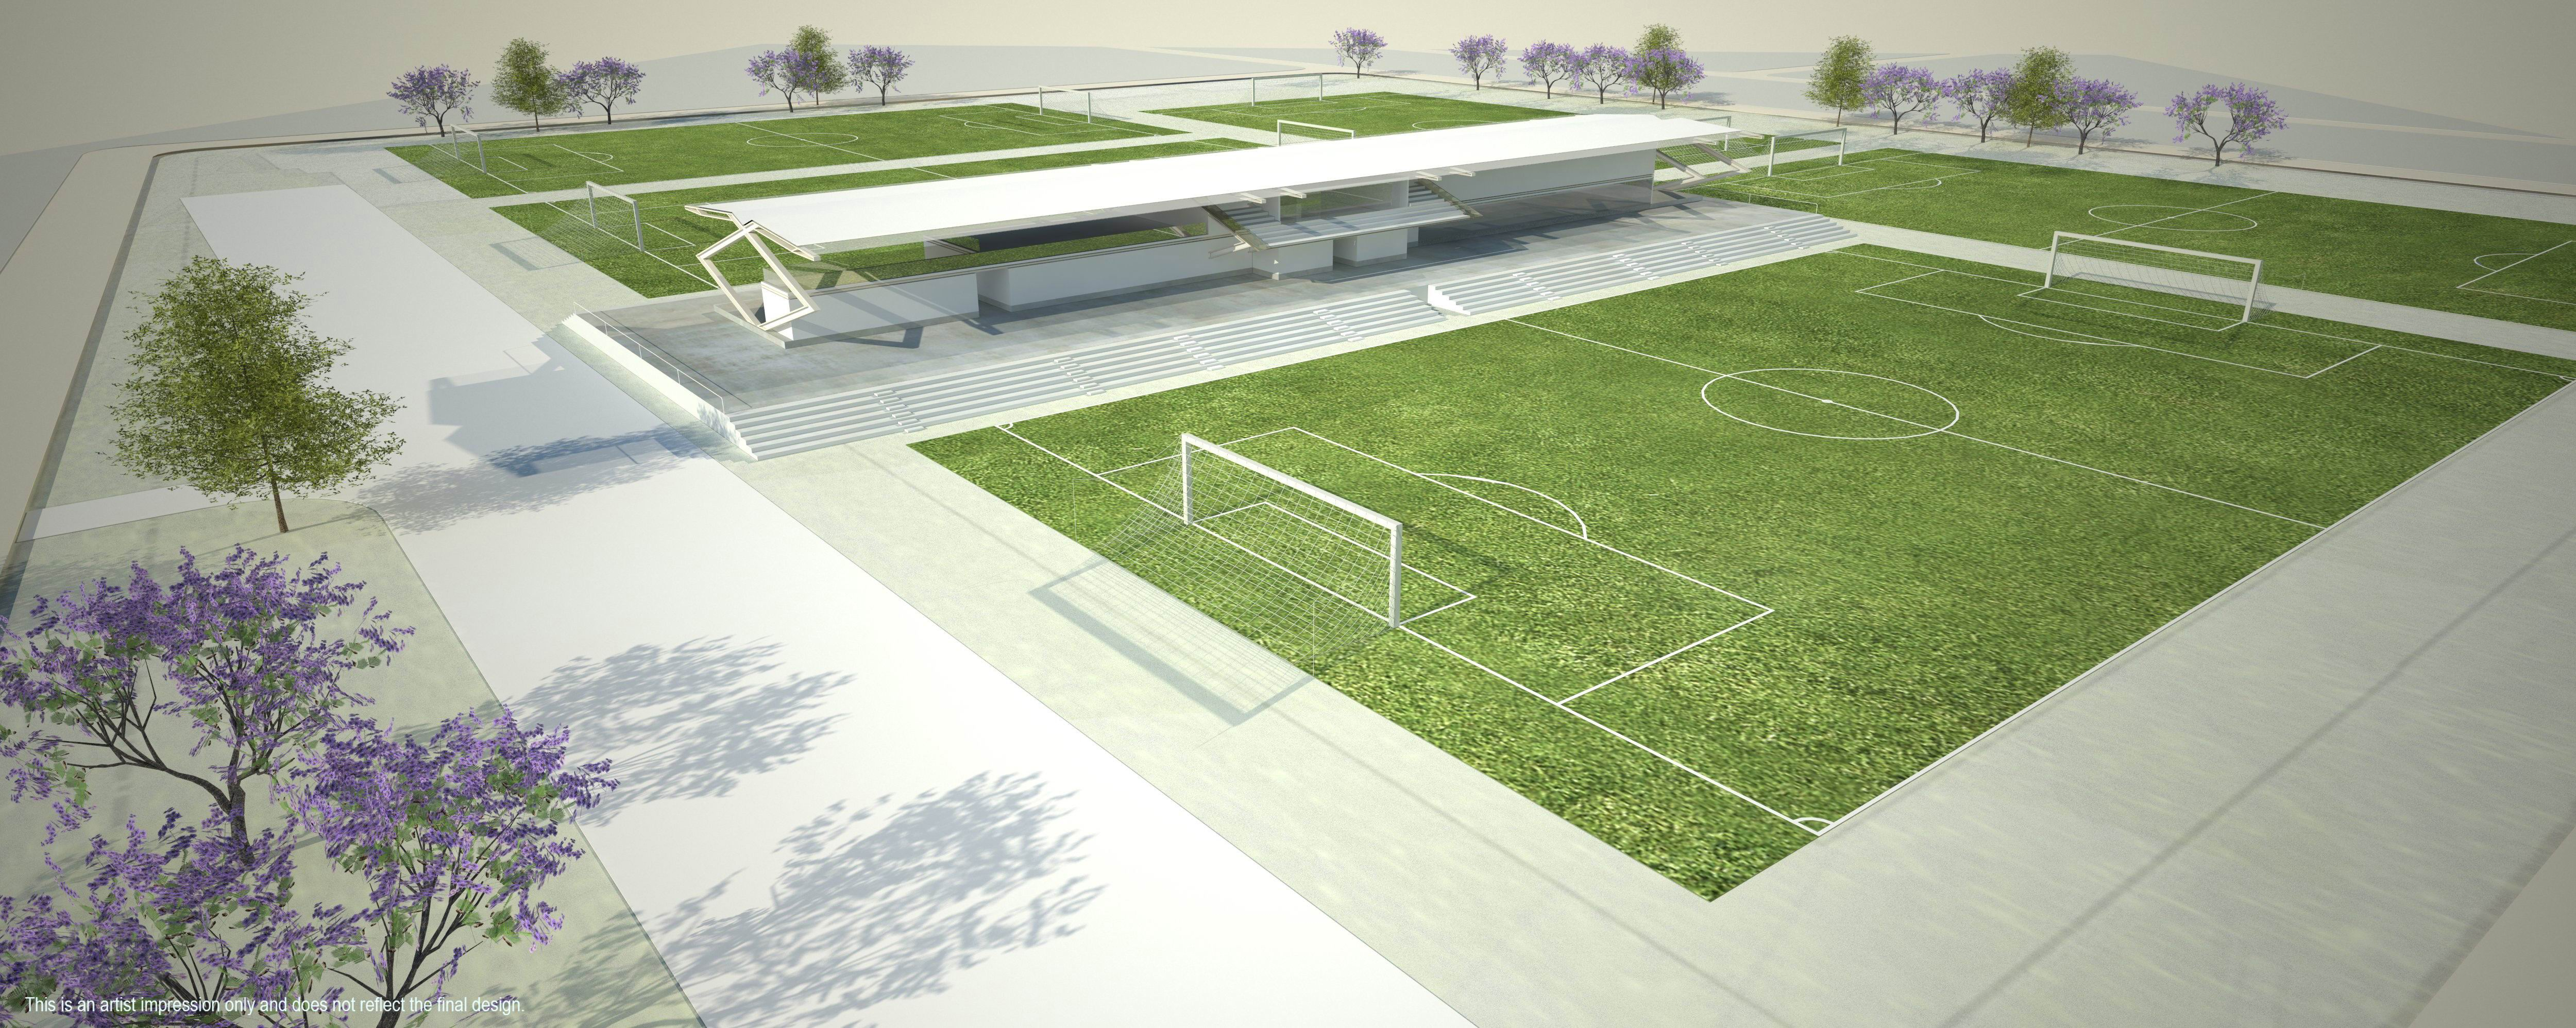 Concept plans of the State Football Centre.